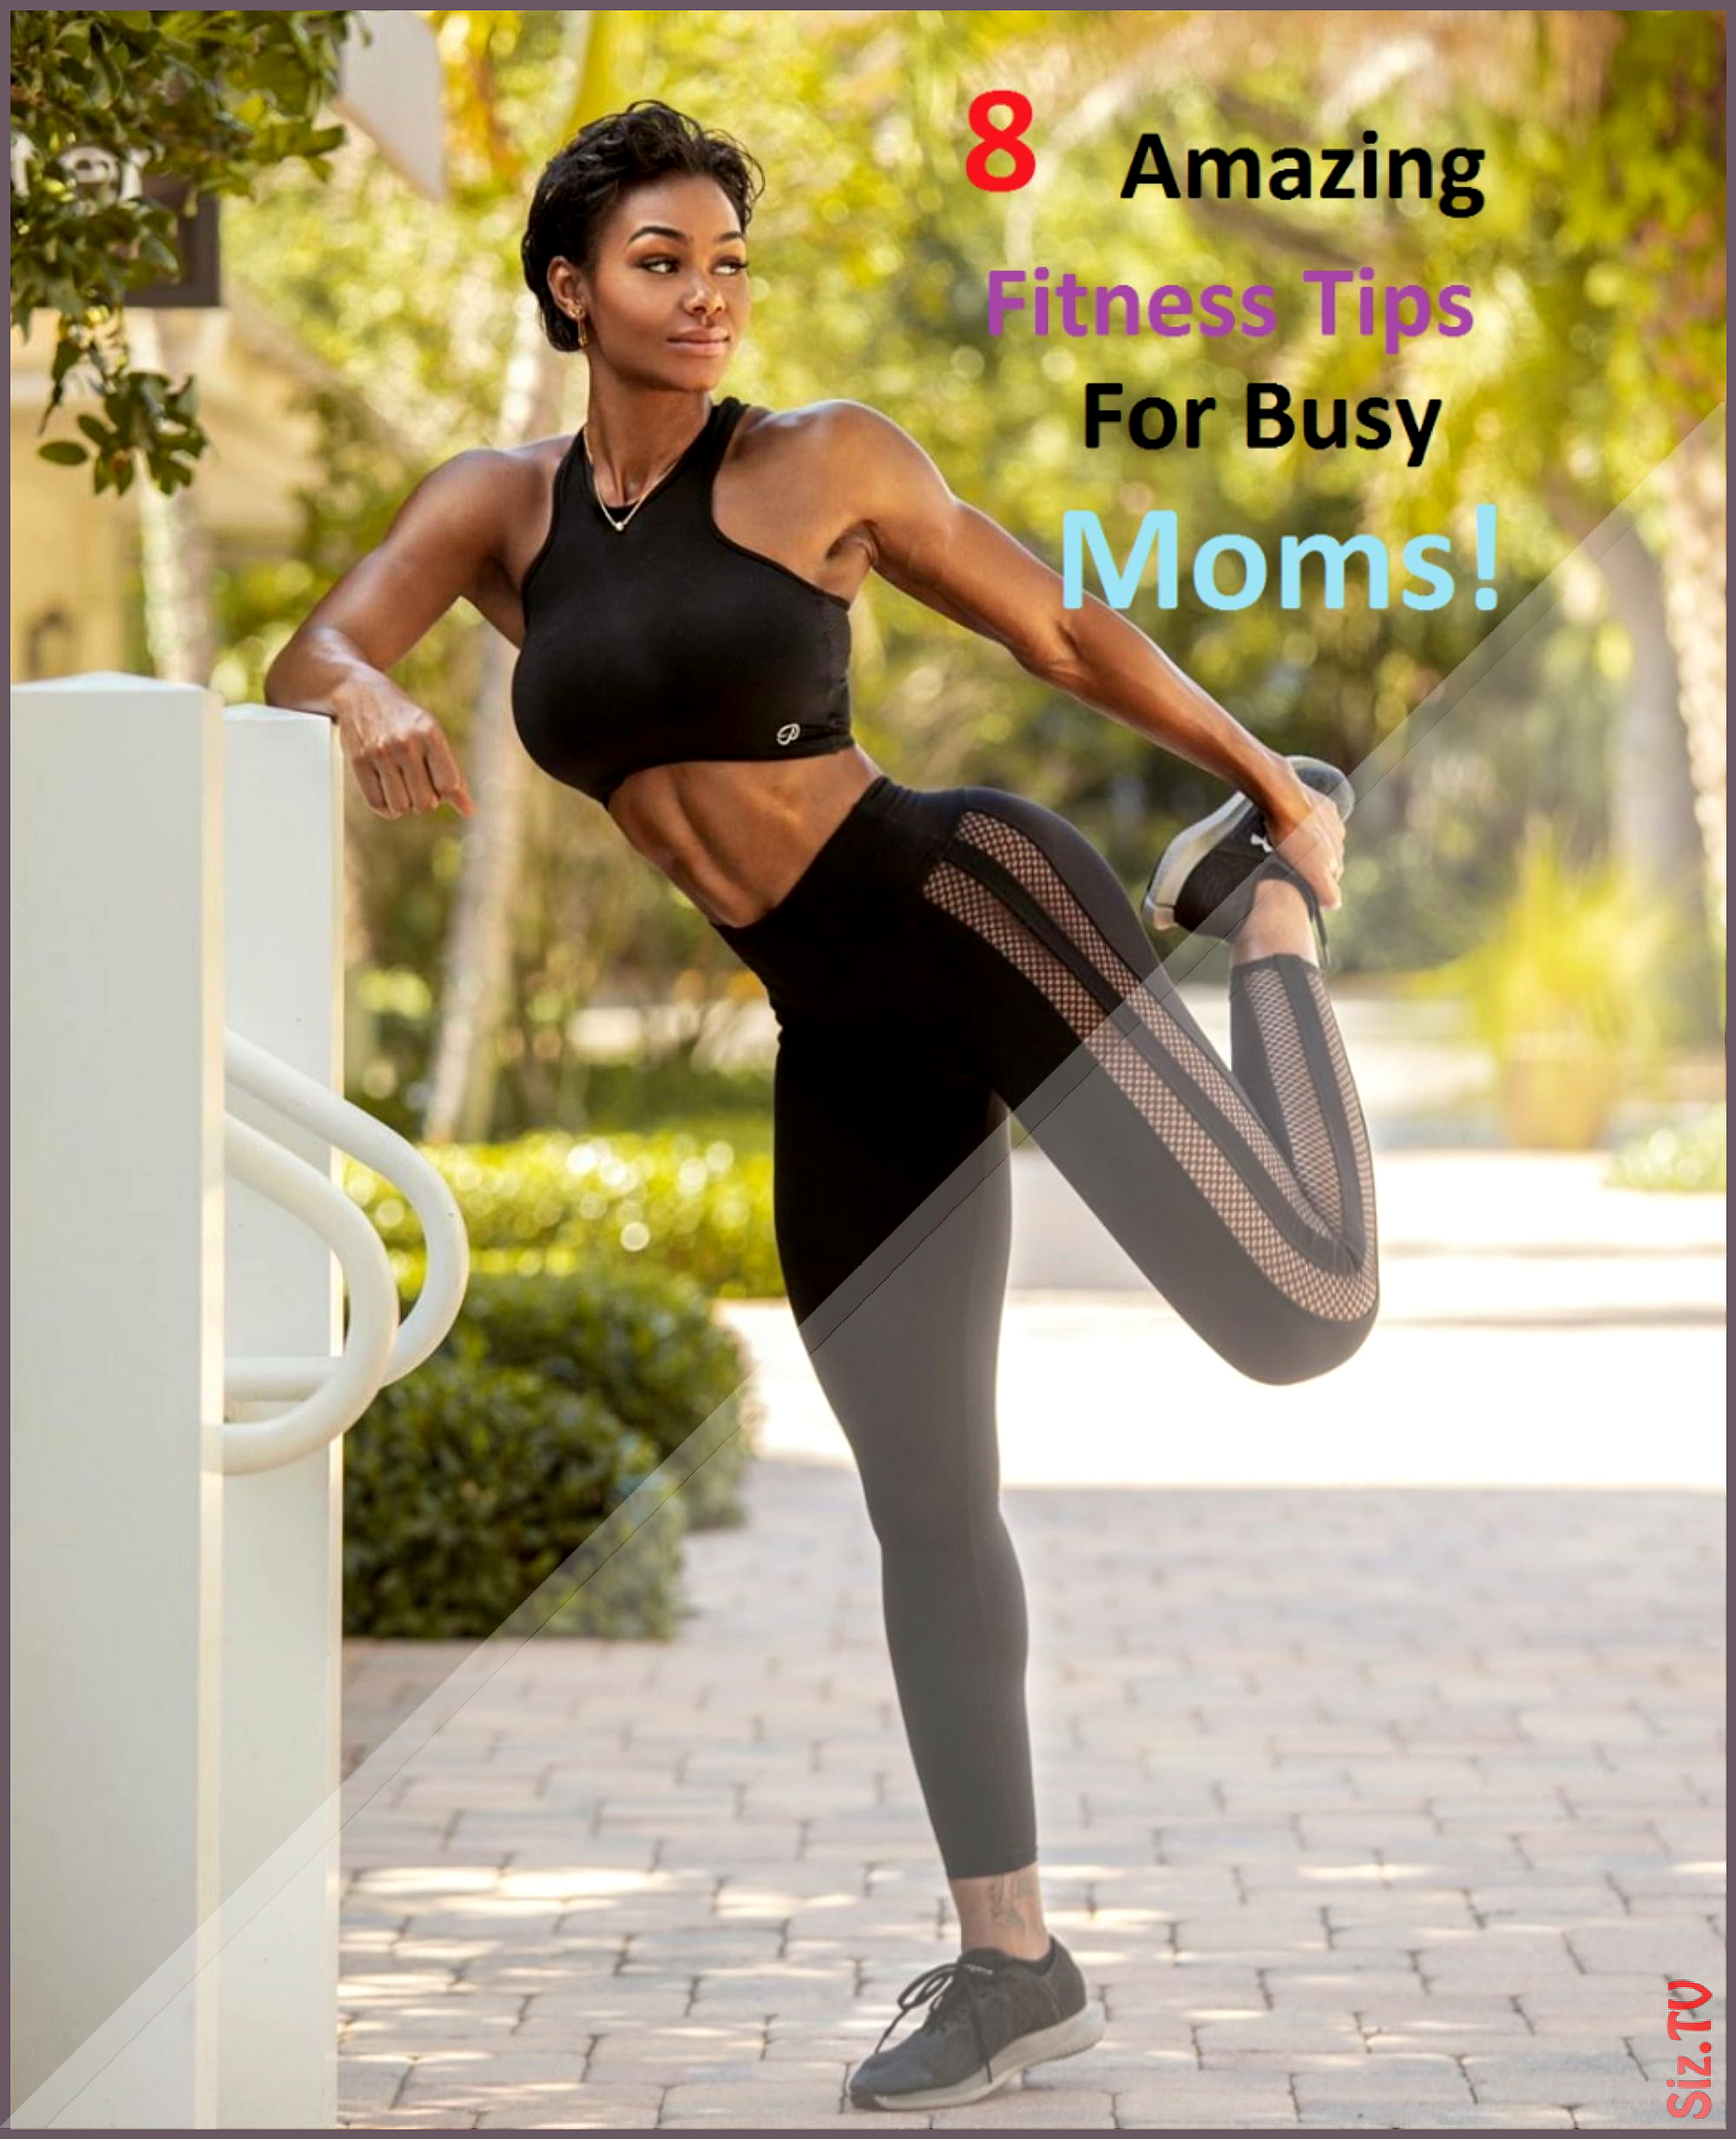 8 Health And Fitness Tips For Busy Moms 8 Health And Fitness Tips For Busy Moms John Strong mandsjuk...